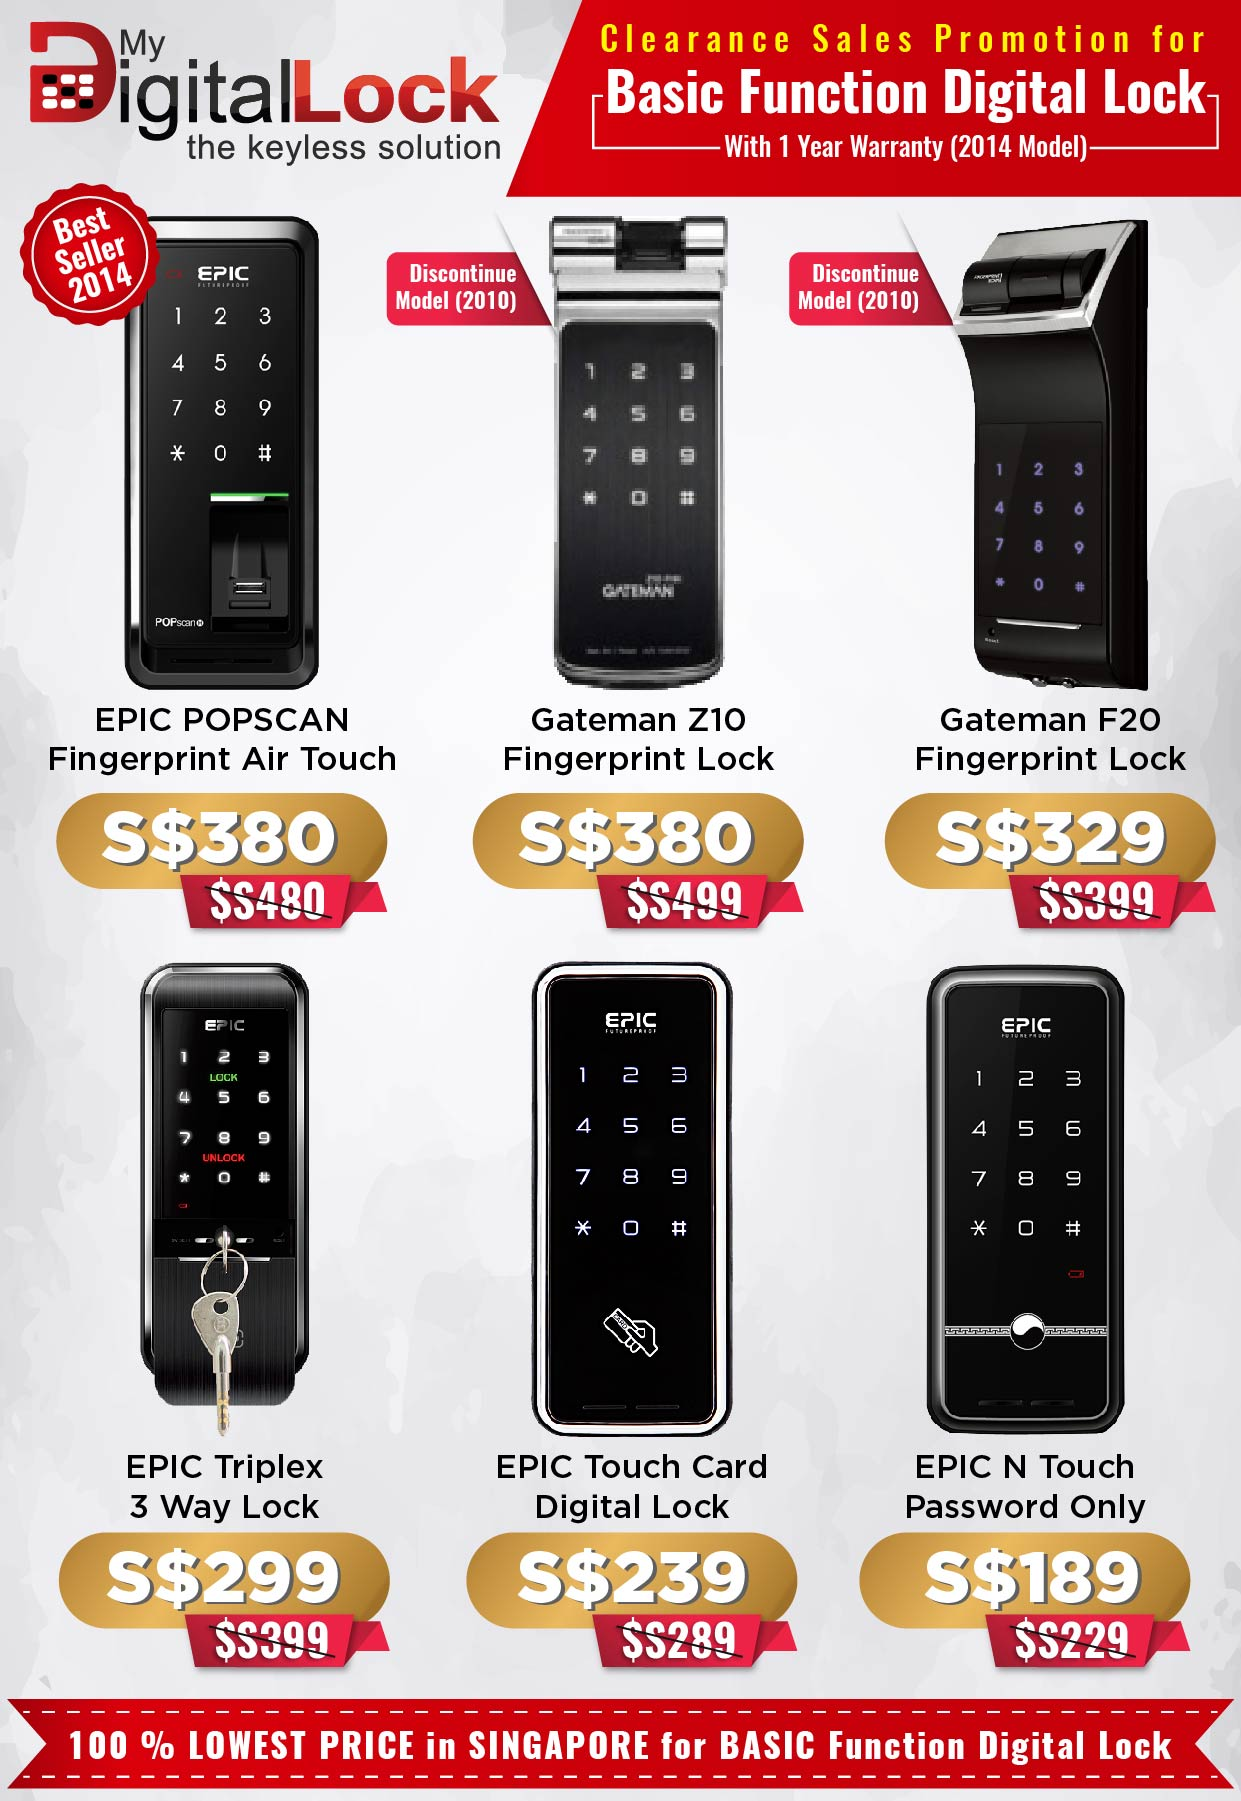 gatemen digital lock - Clearance-Sales-Promotion-for-EPIC-and-Gateman